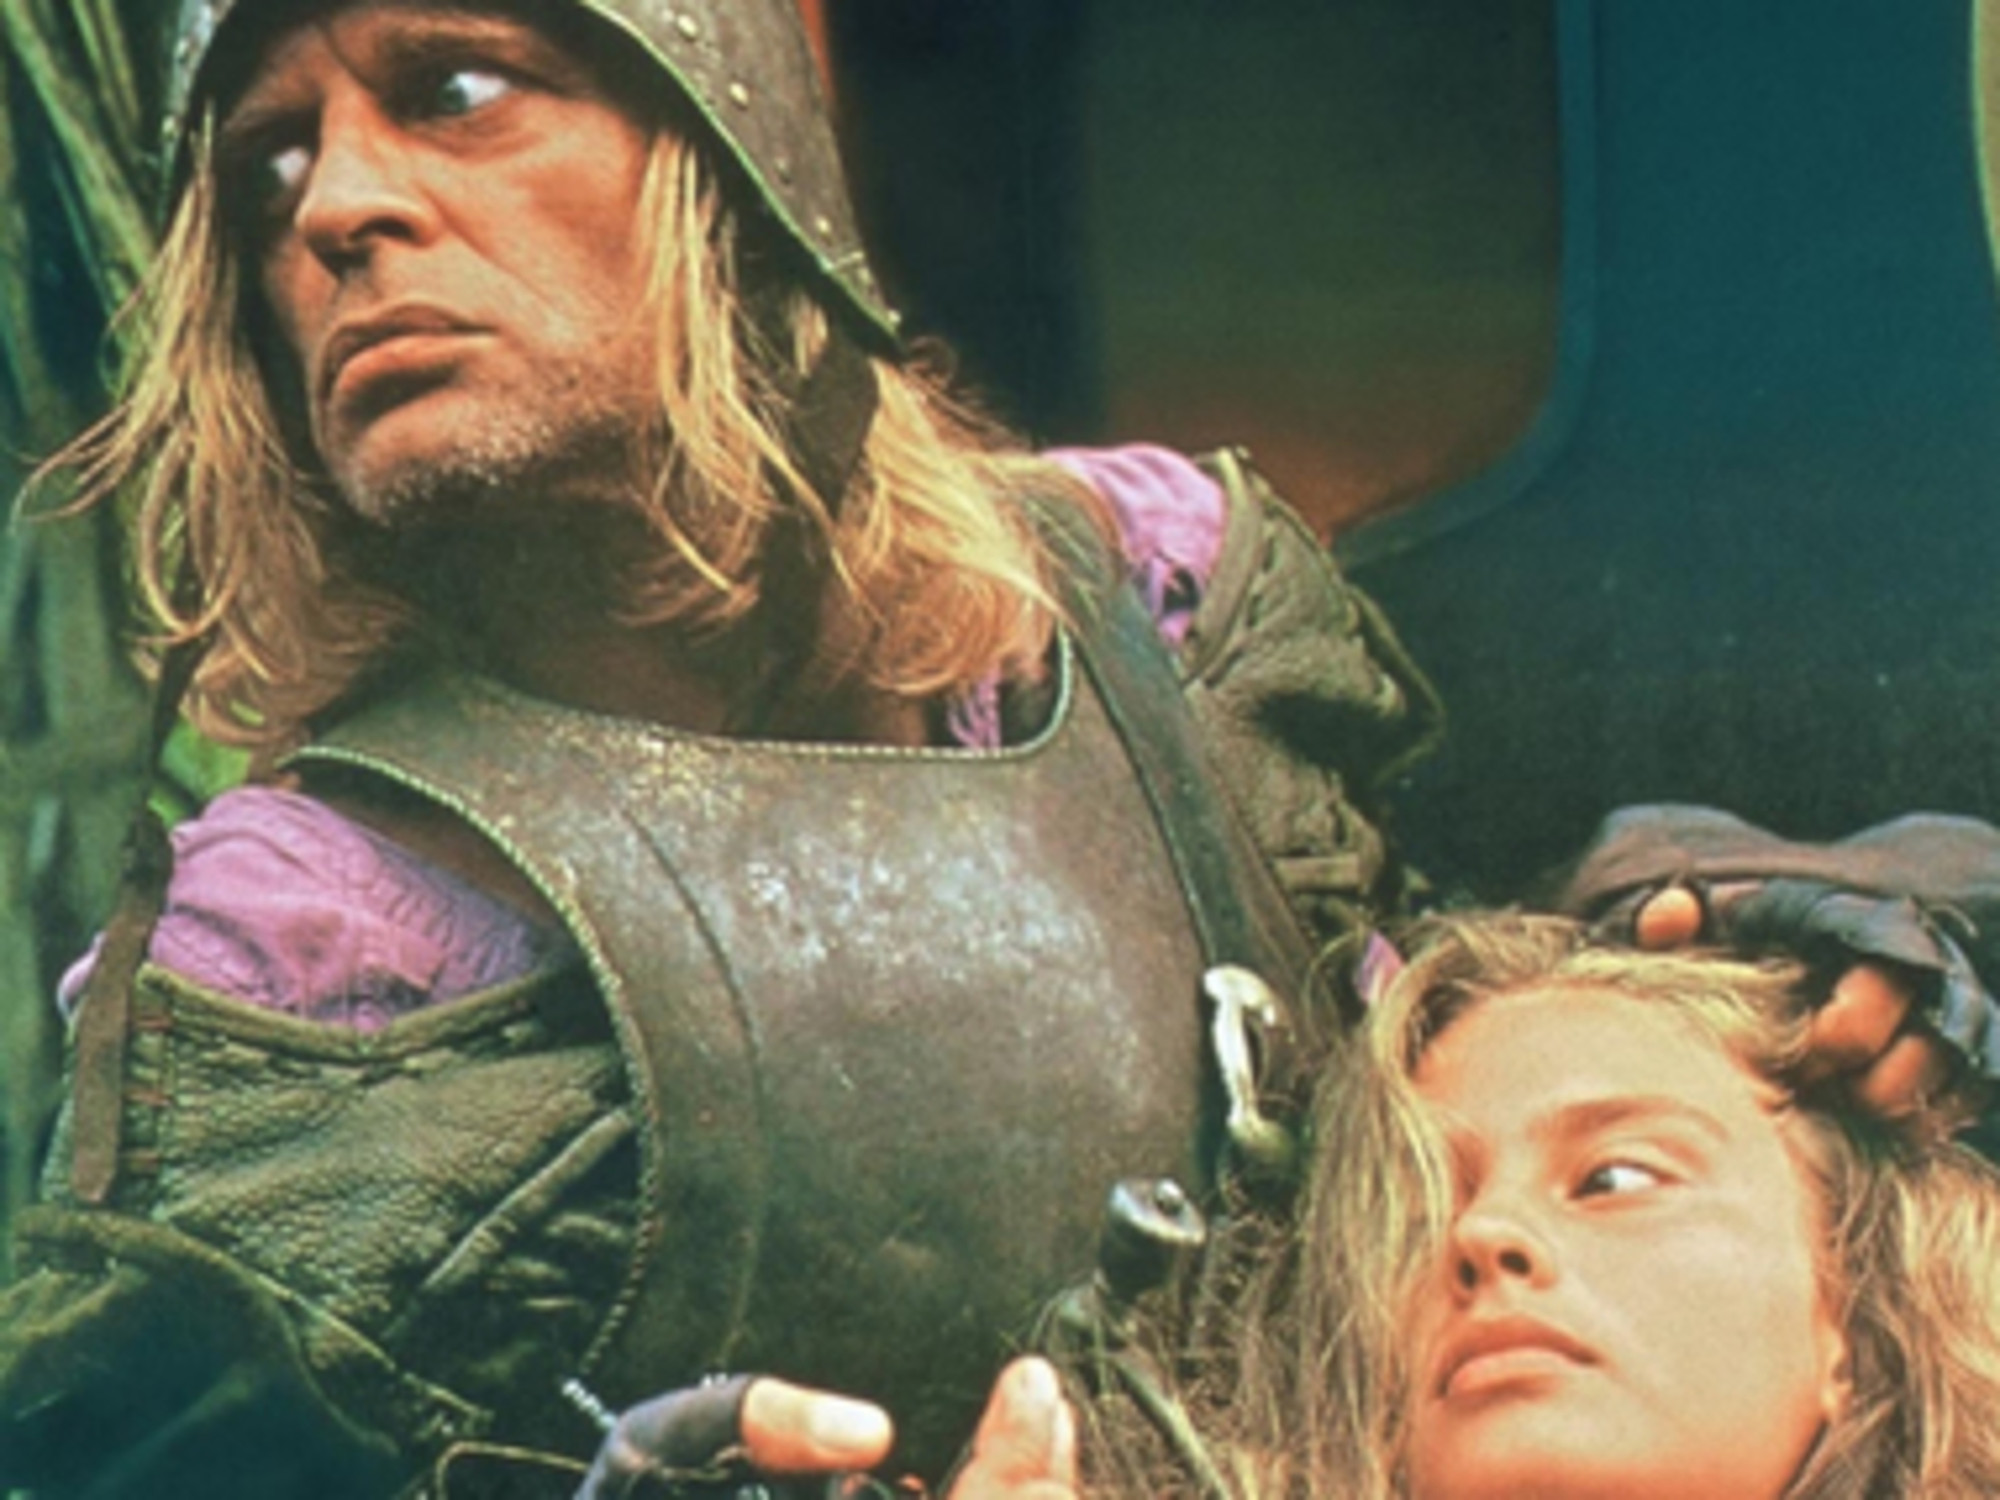 Aguirre, Der Zorn Gottes (Aguirre, the Wrath of God). 1973. West Germany. Directed by Werner Herzog